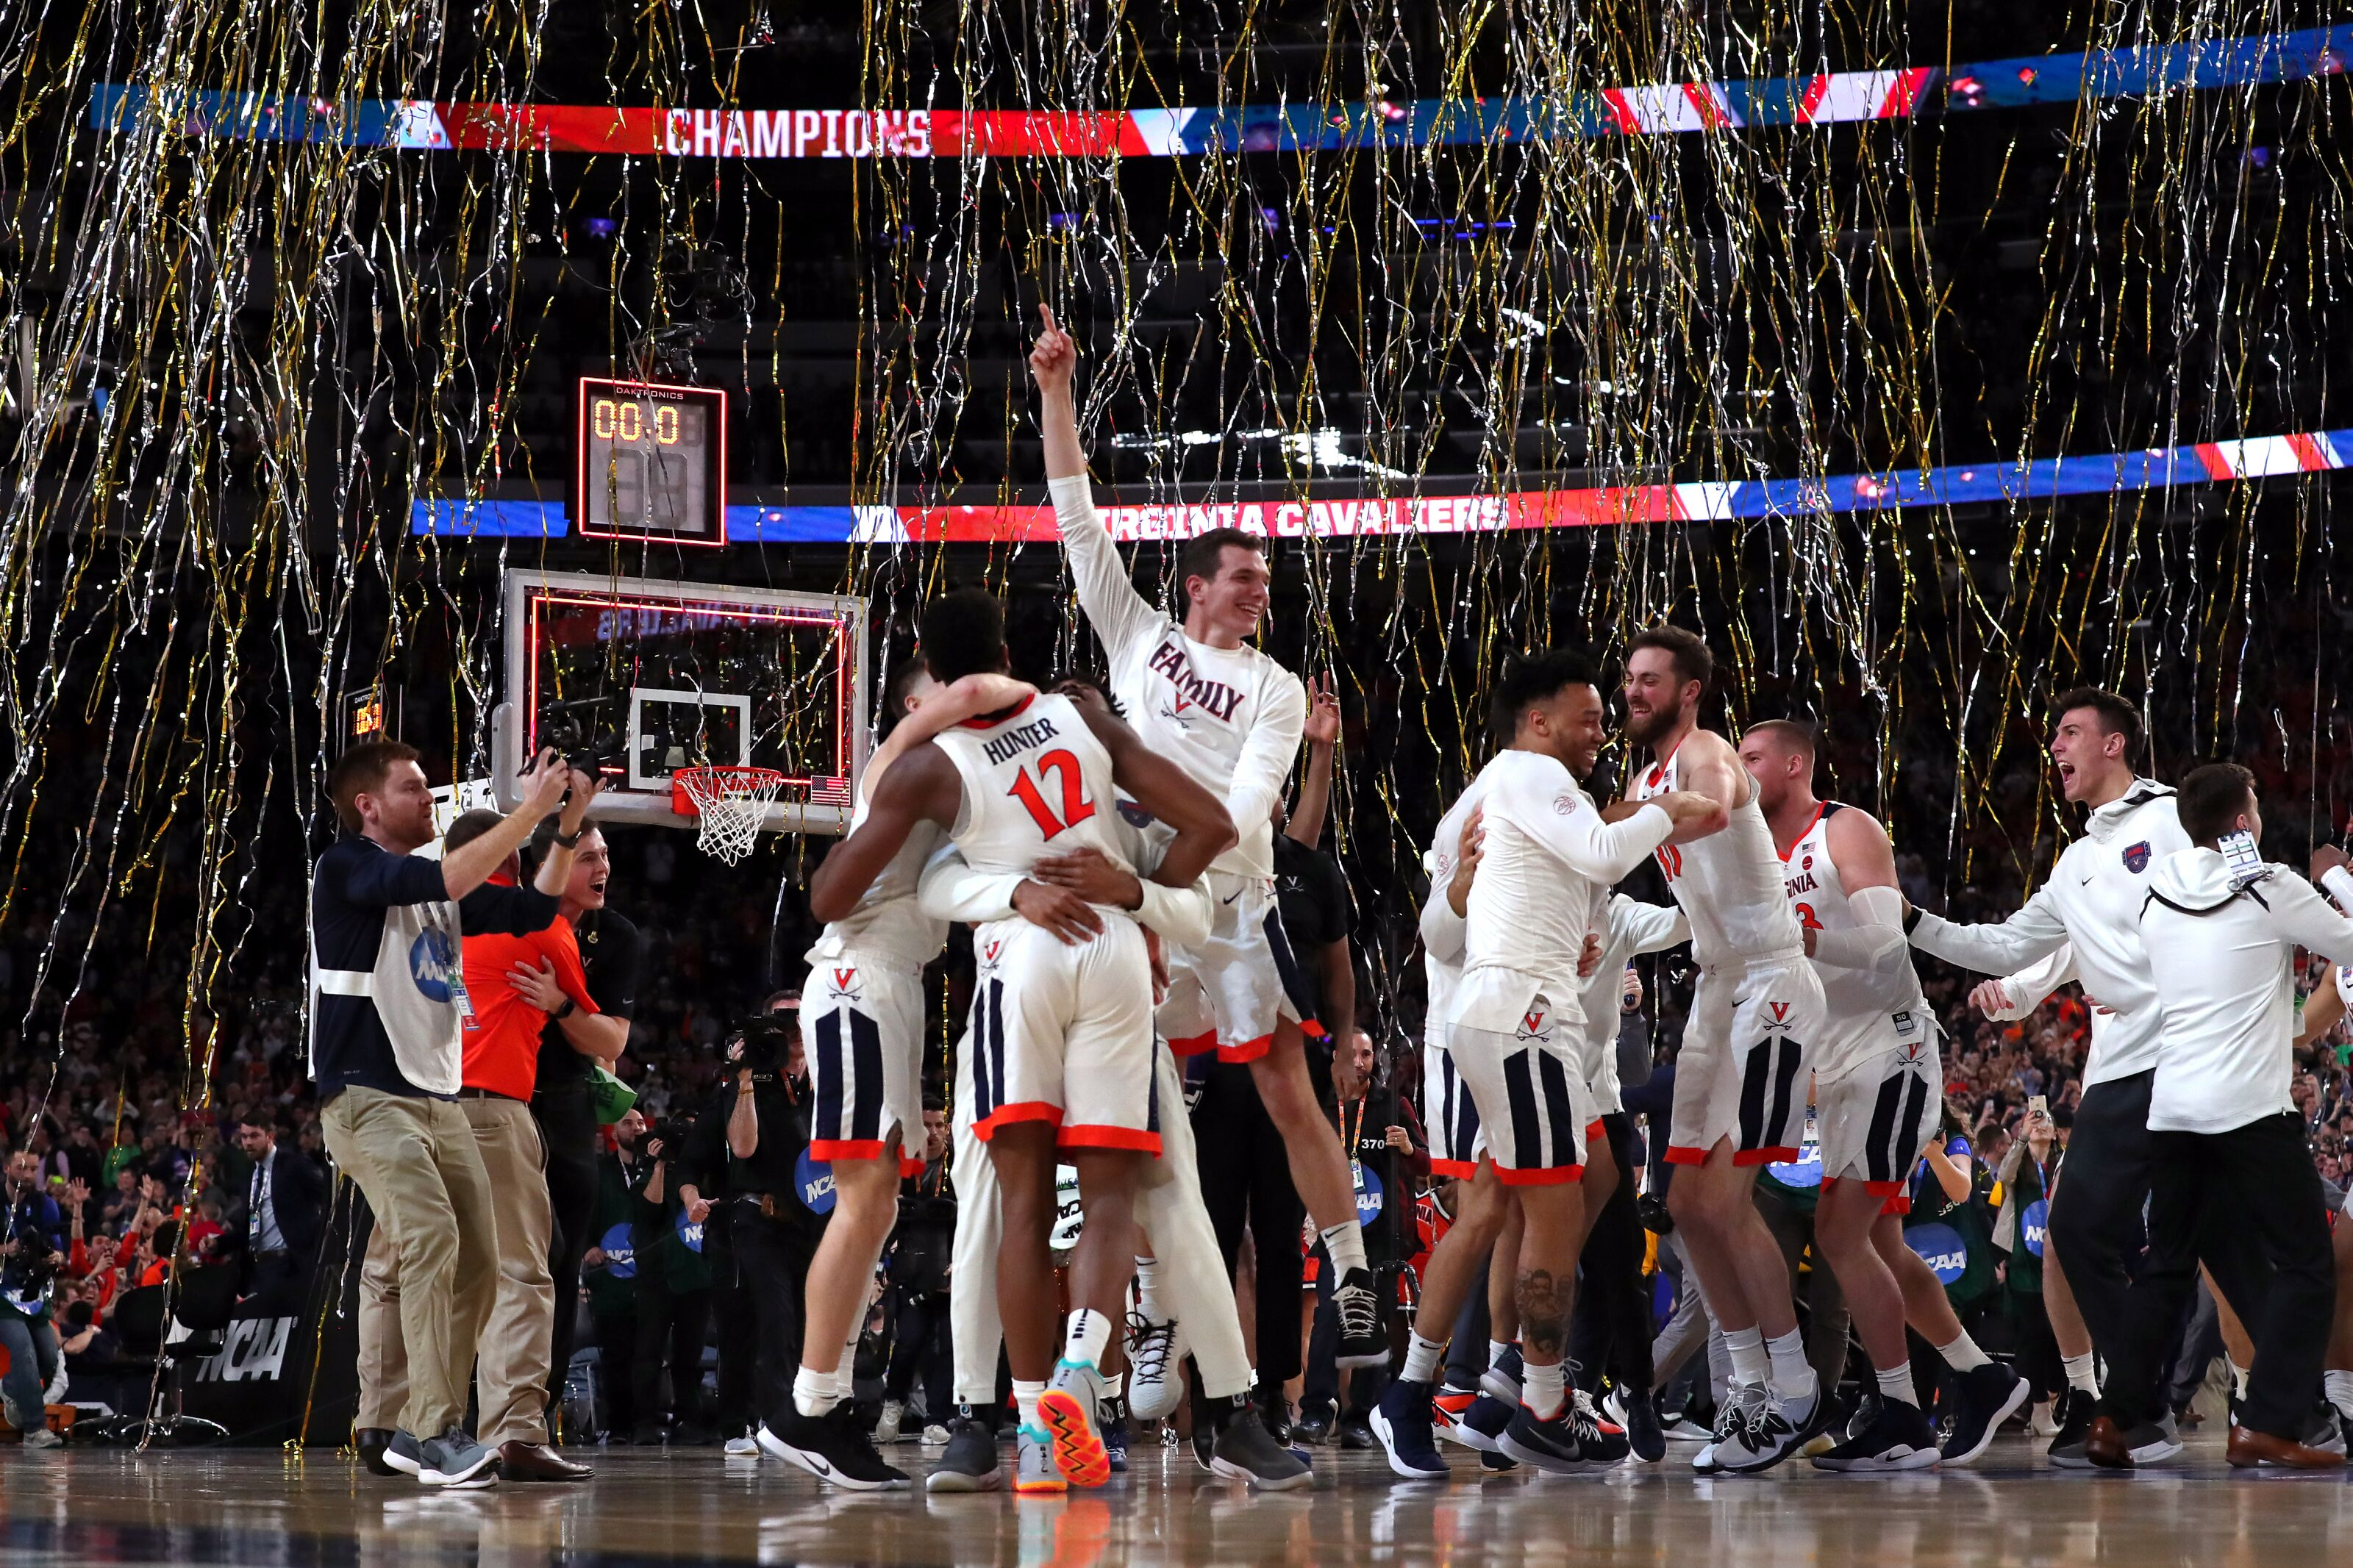 e04802035 Virginia Basketball: Storybook 2018-19 season fittingly ends with title